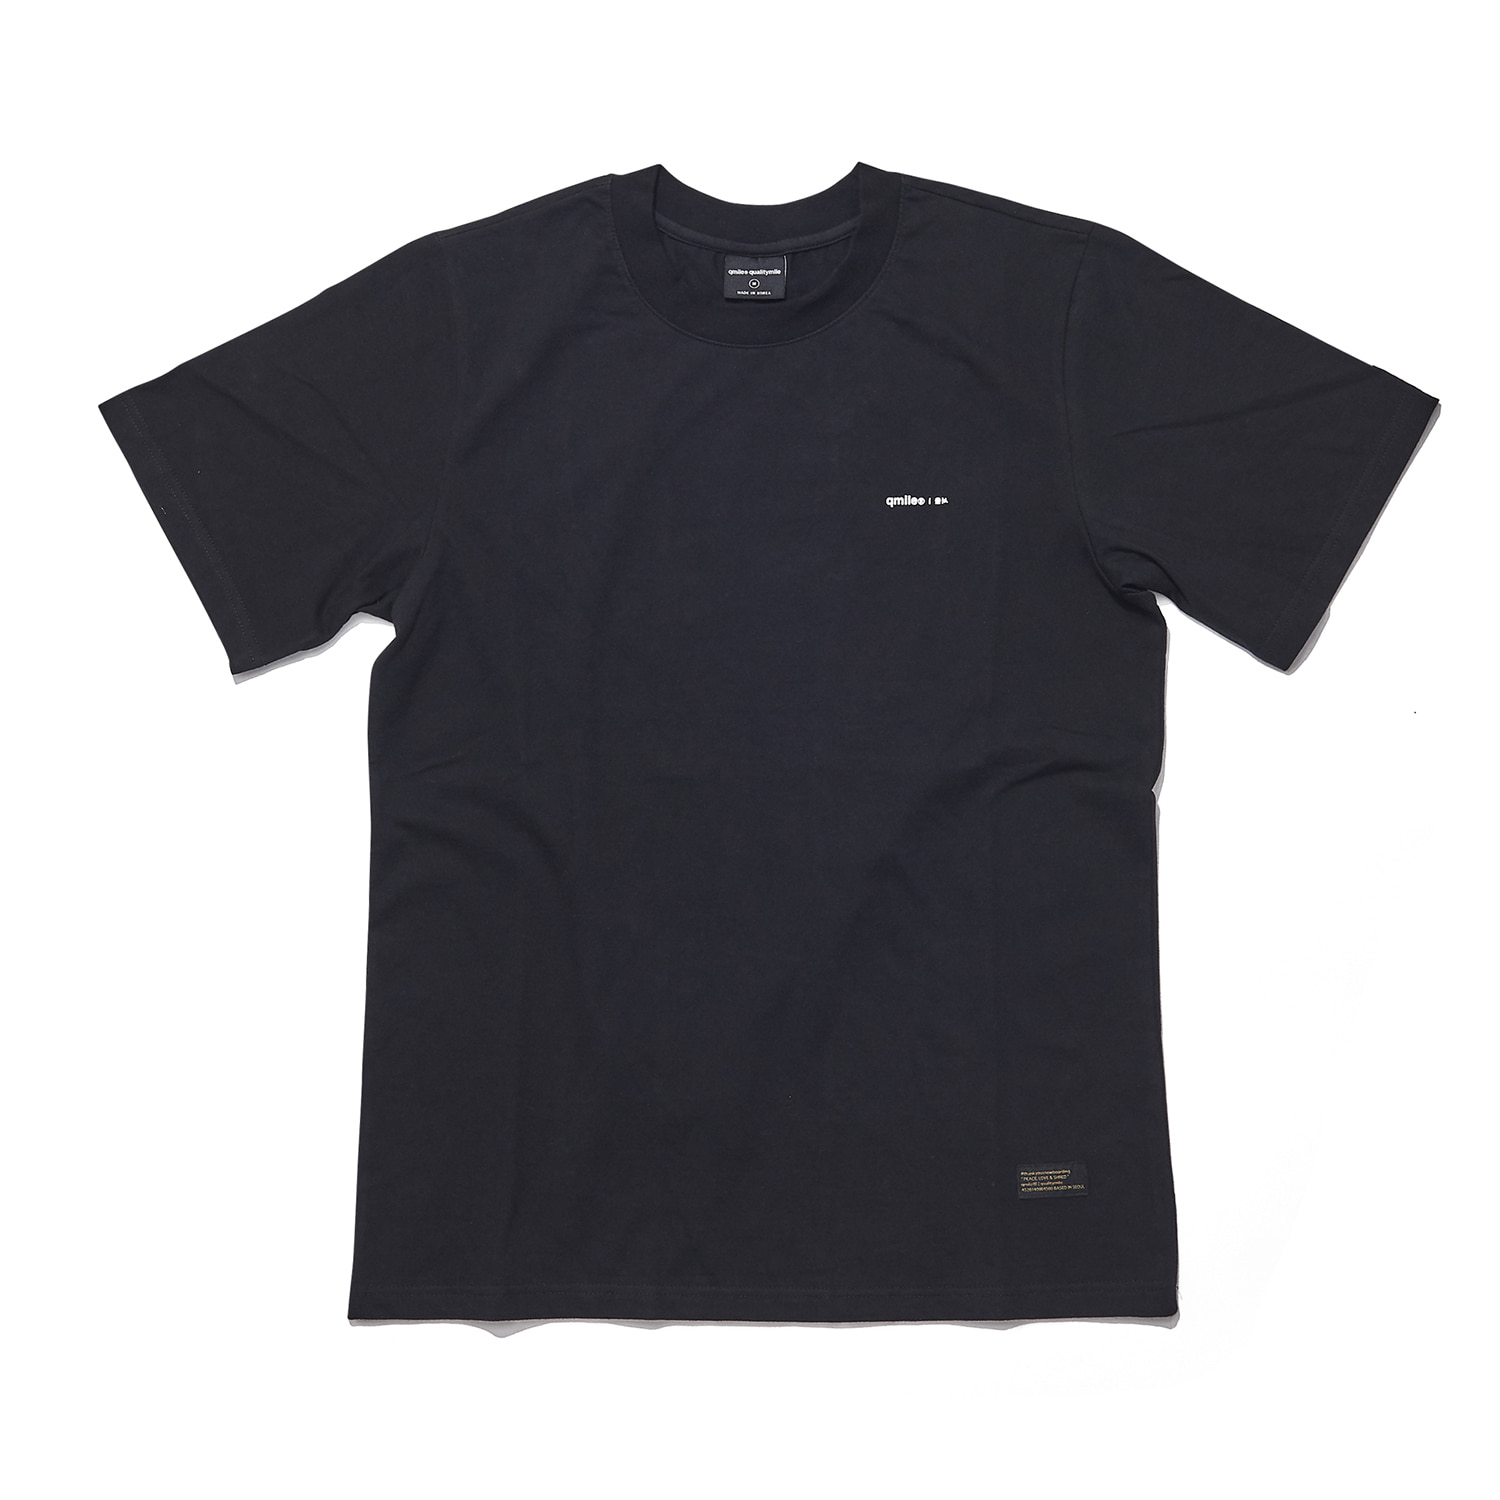 HG (Hangeul) short sleeve black